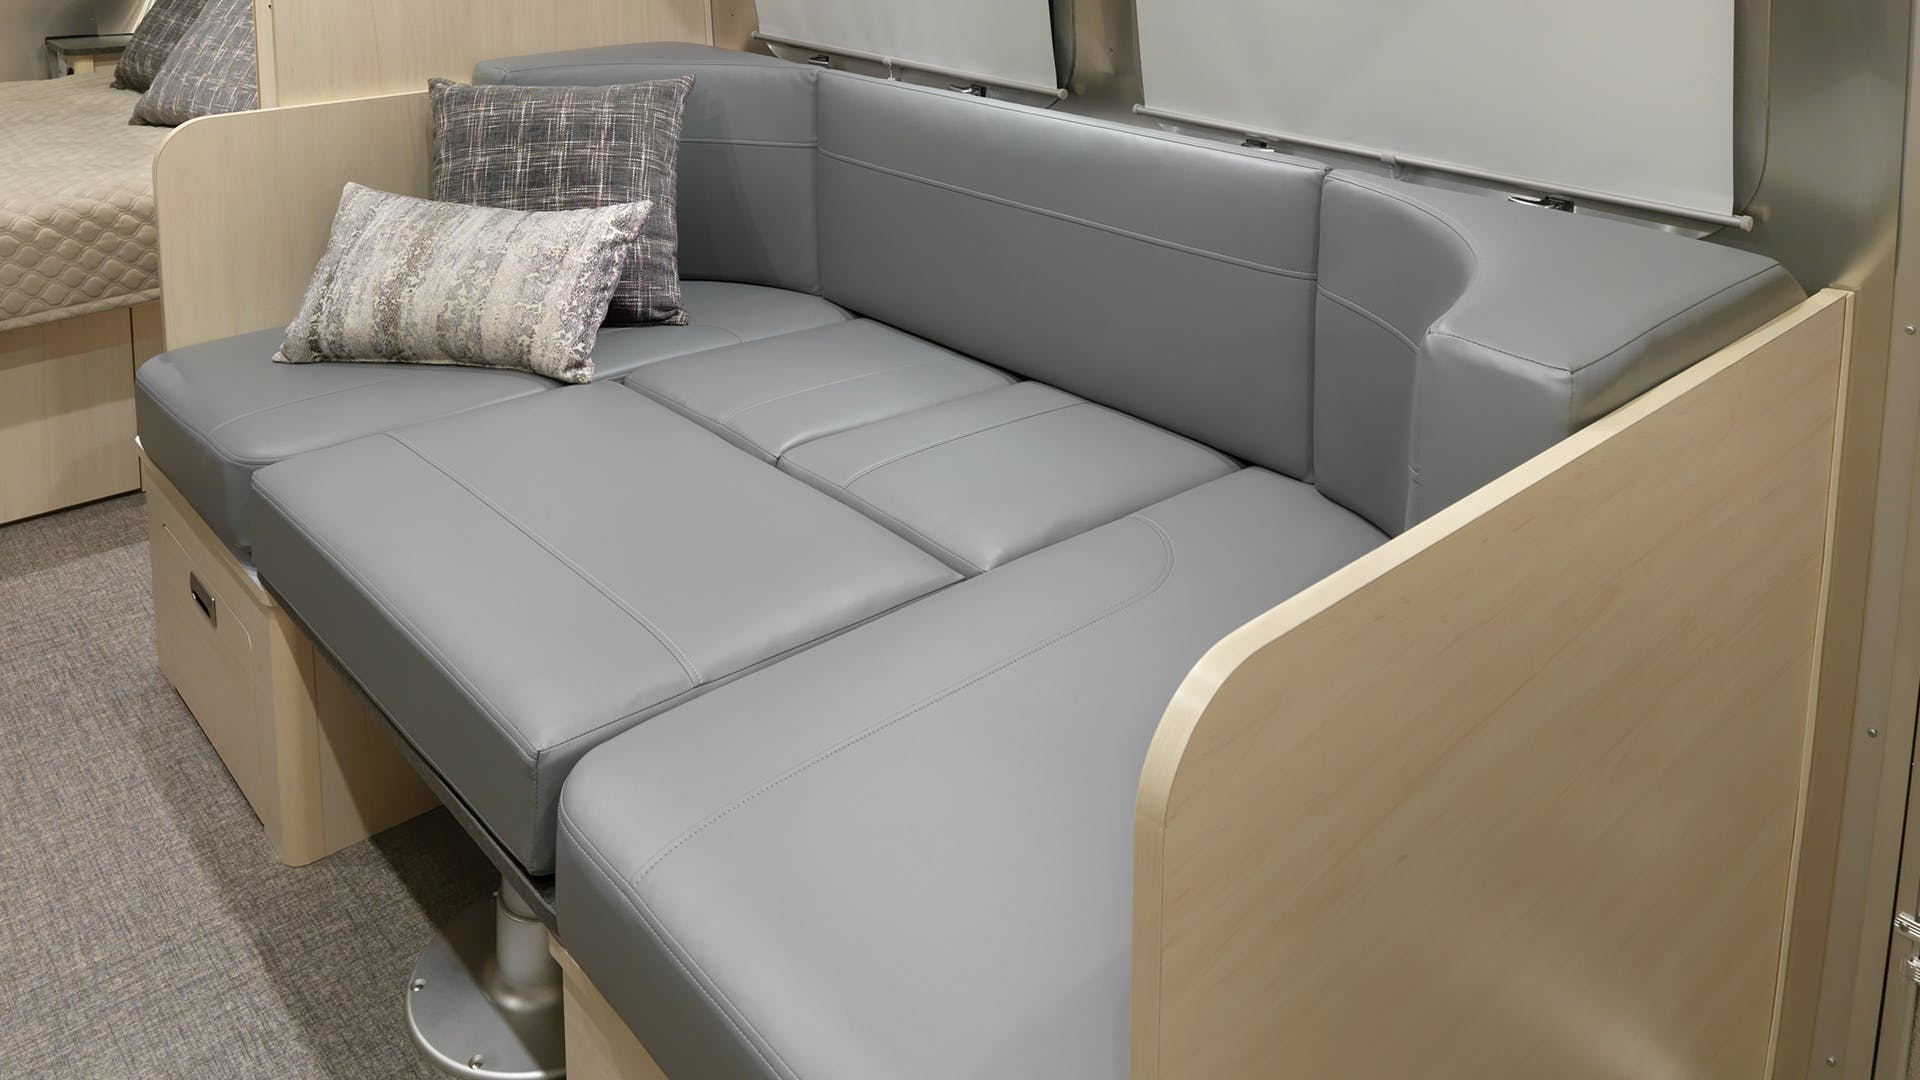 2021-Airstream-Flying-Cloud-Sunlit-Maple-Interior-with-Seattle-Mist-Ultraleather-Converted-Bed